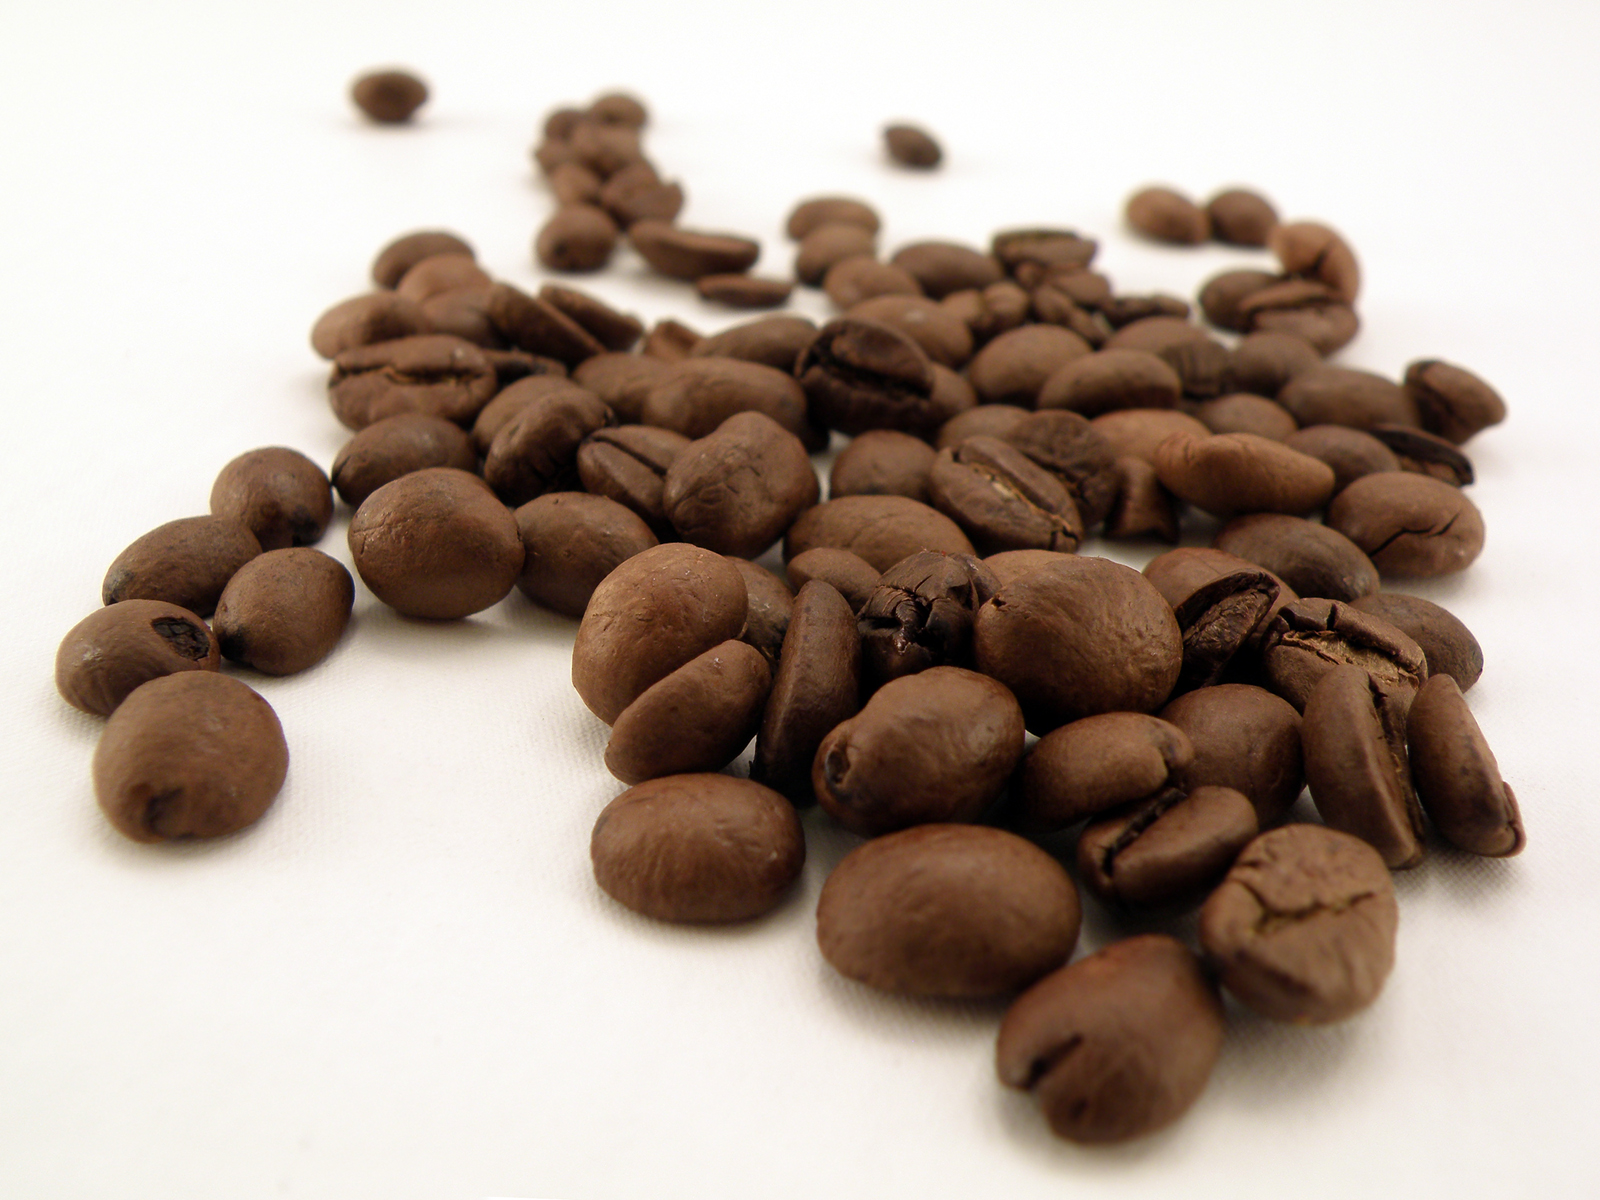 wallpapers: Coffee Beans Images